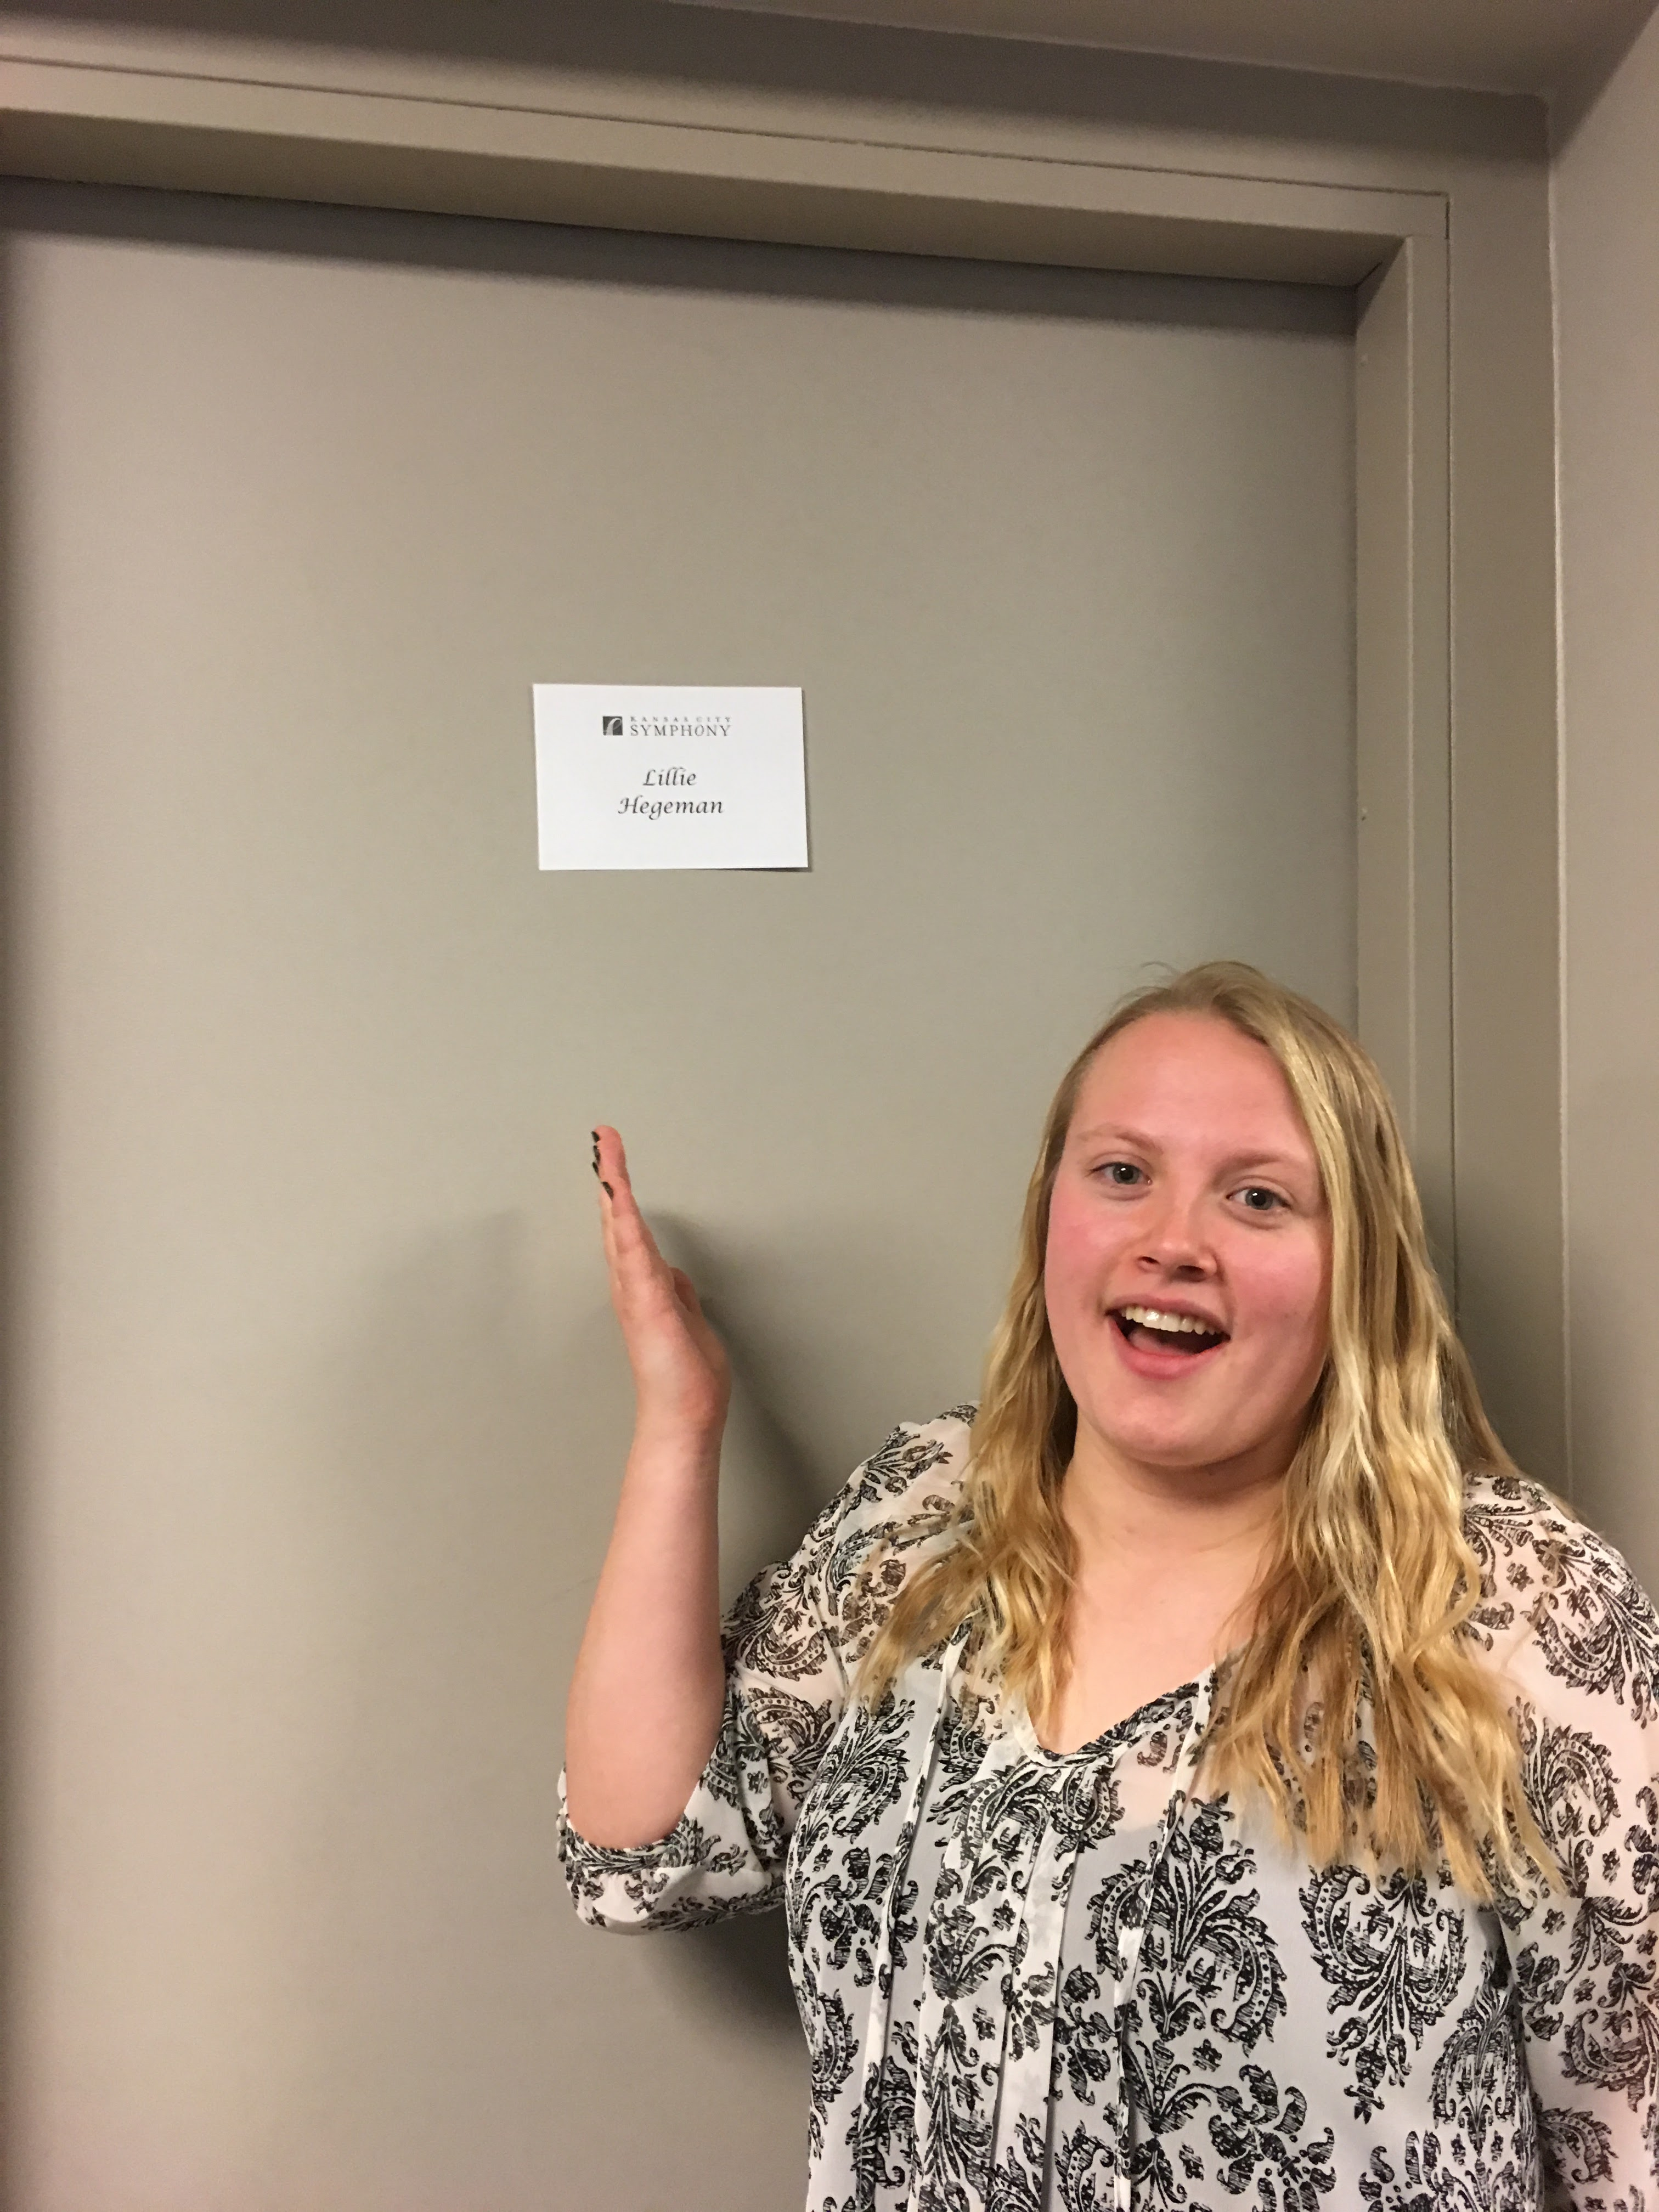 Her own dressing room!